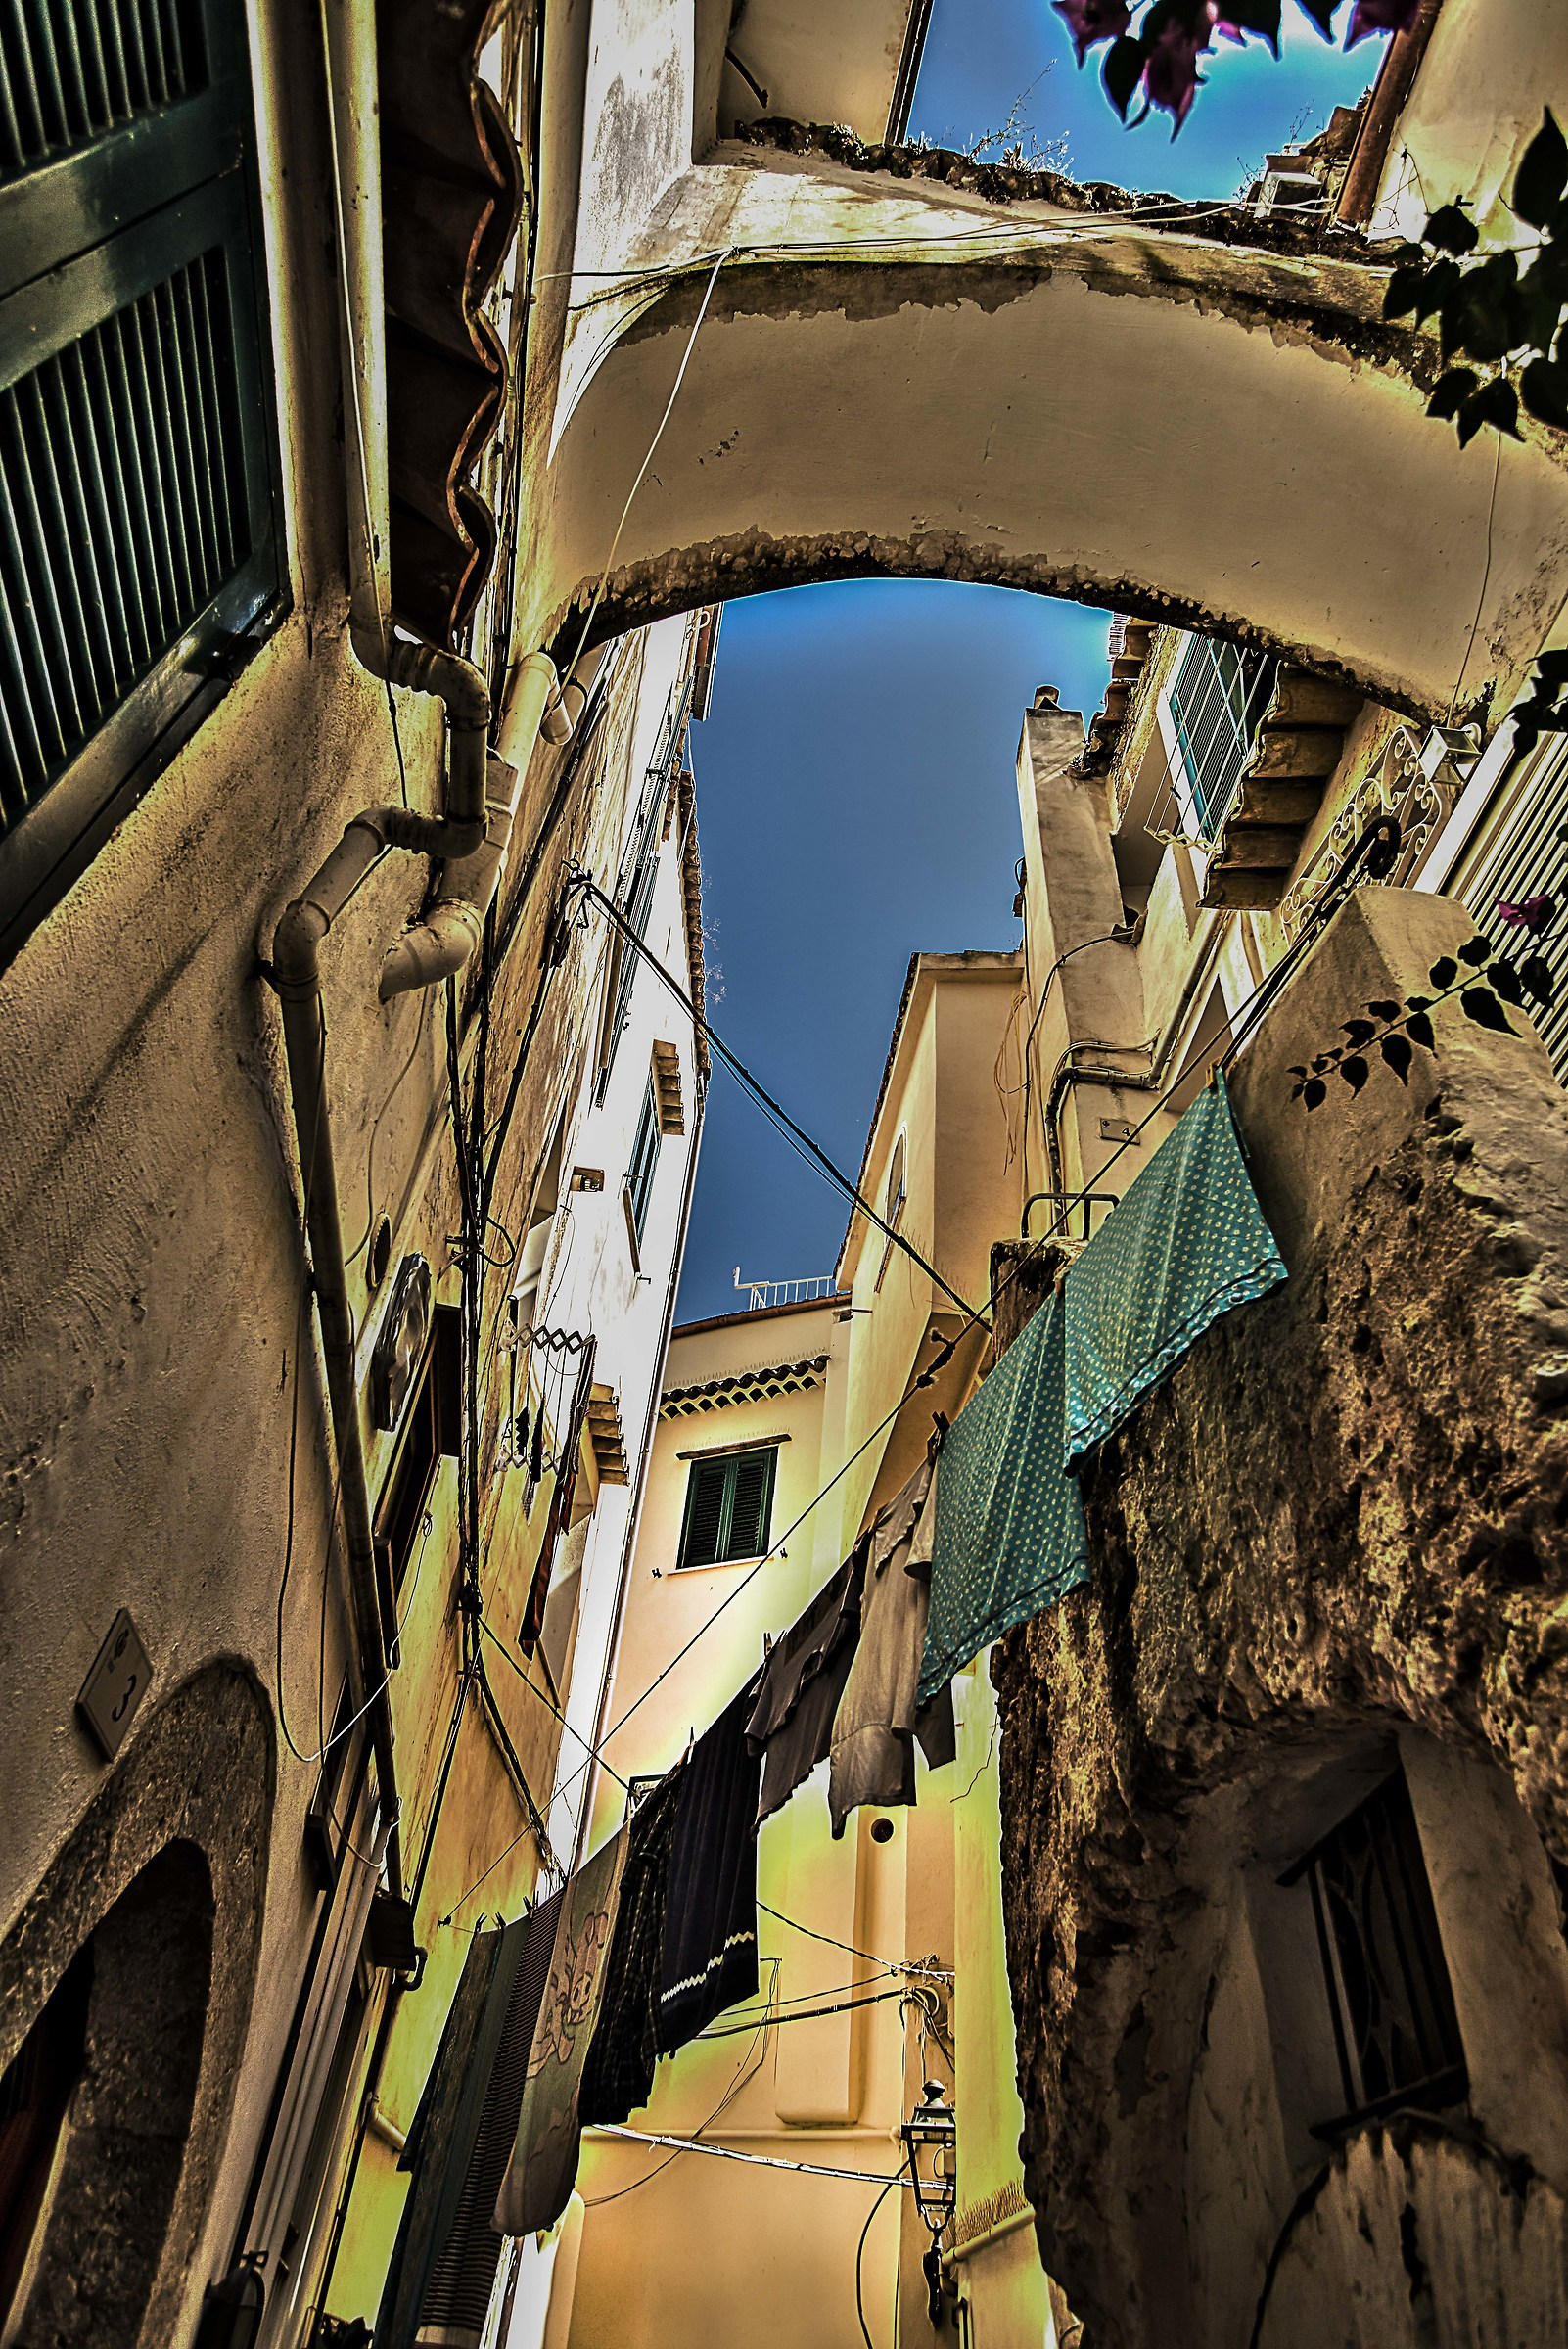 Between the alleys of Sperlonga...